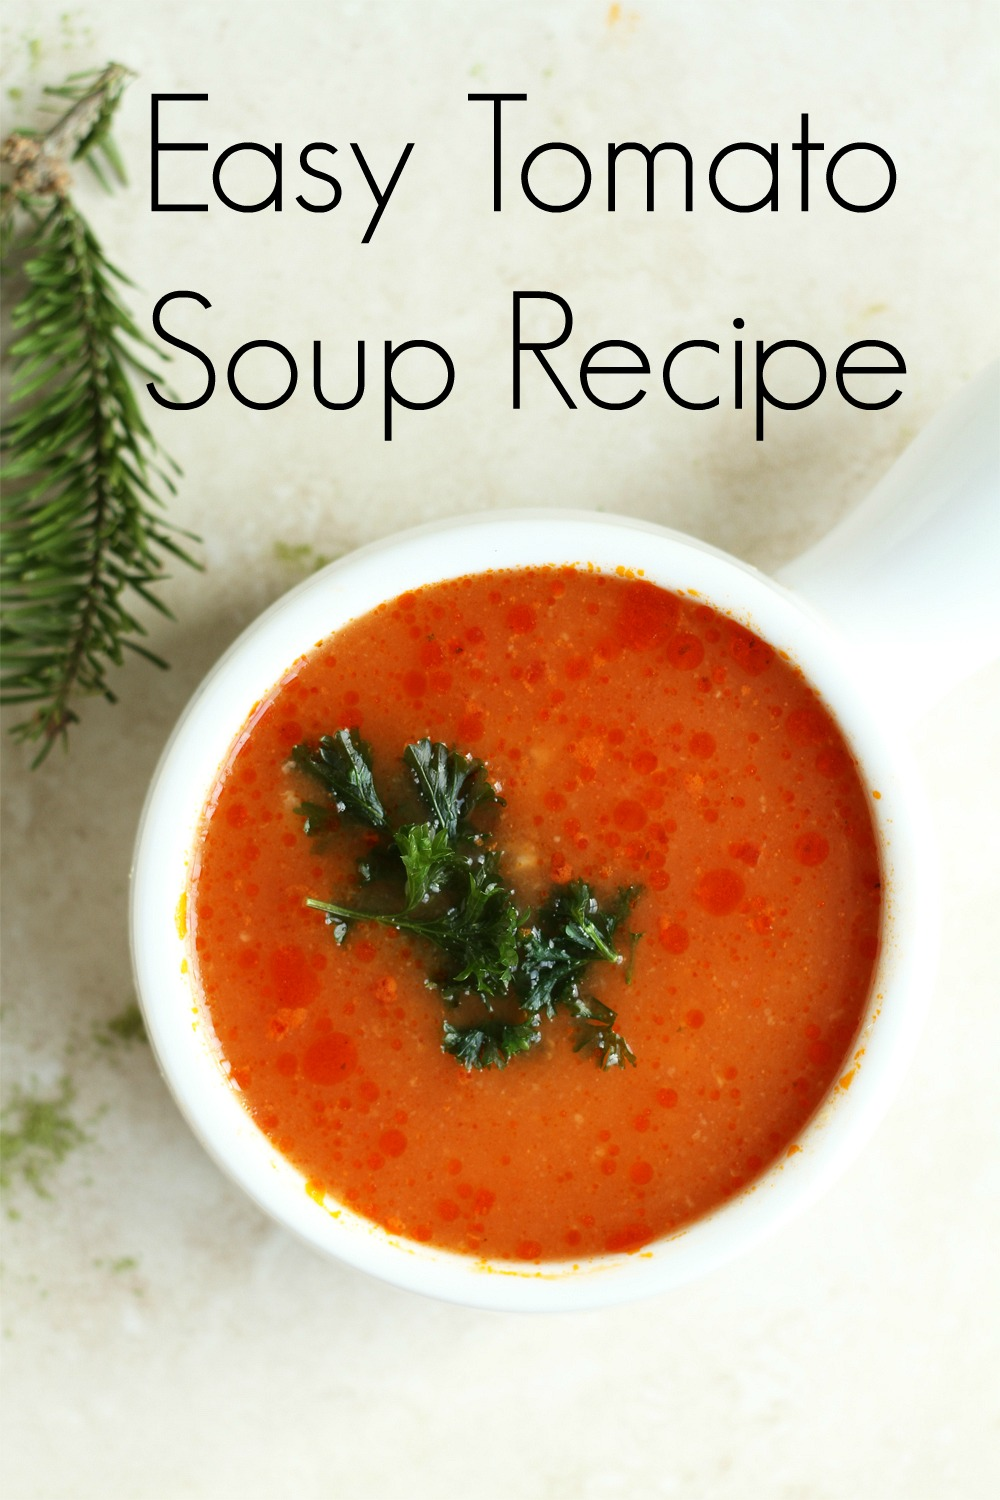 Easy Tomato Soup Recipe | Smart Party Planning